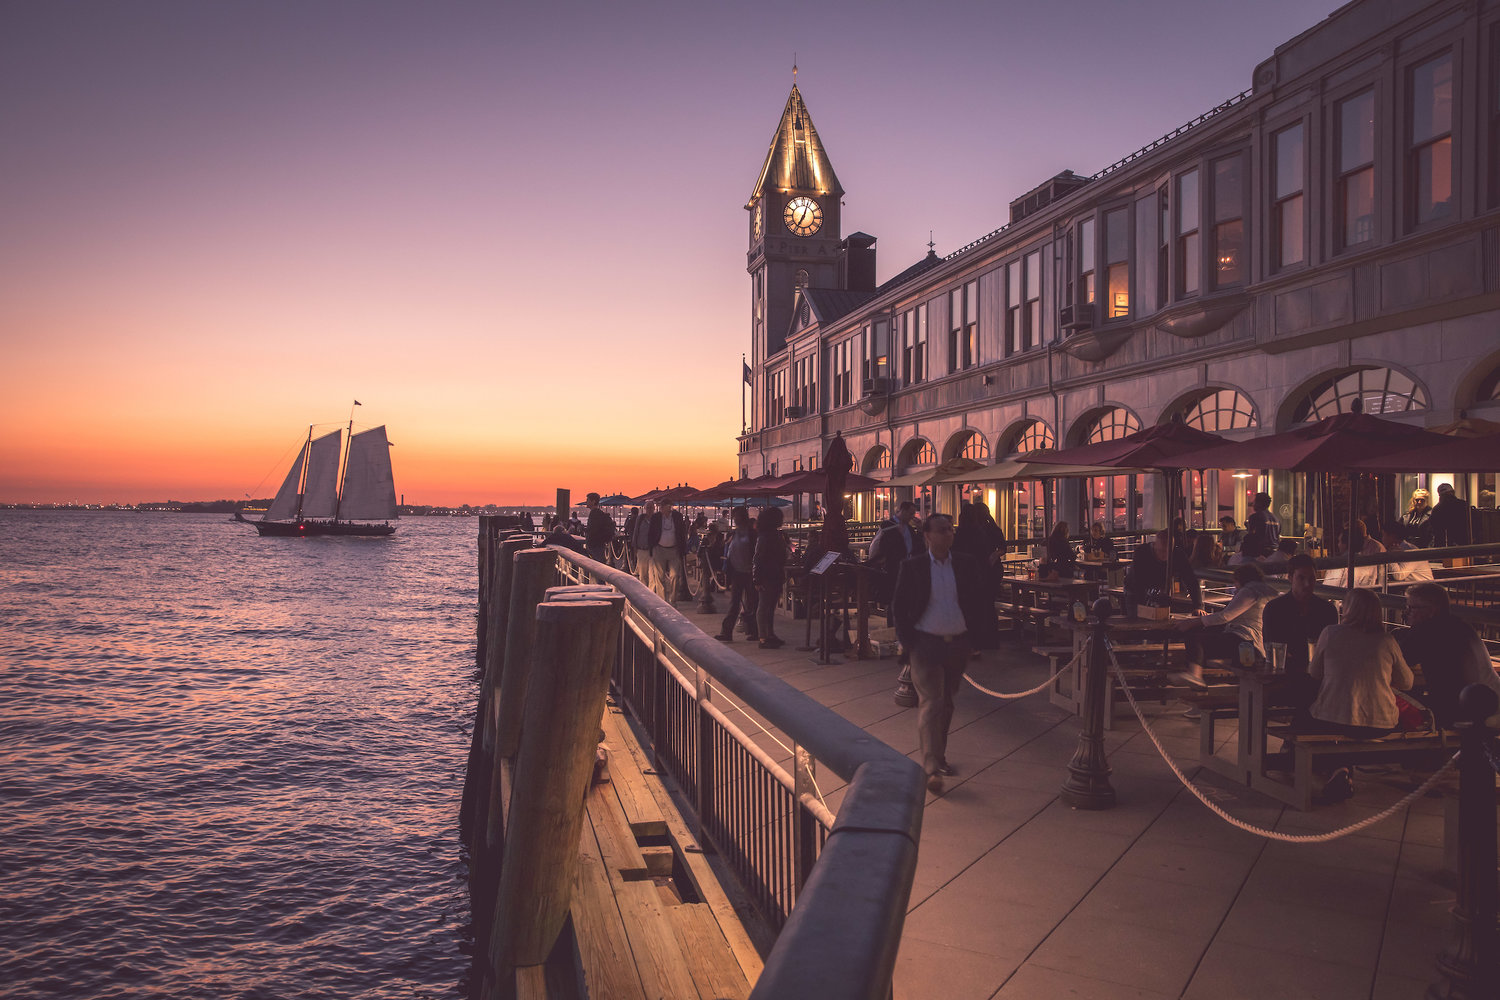 Oyster Bar FiDi, Battery Park Restaurant & Bars in NYC | Pier A